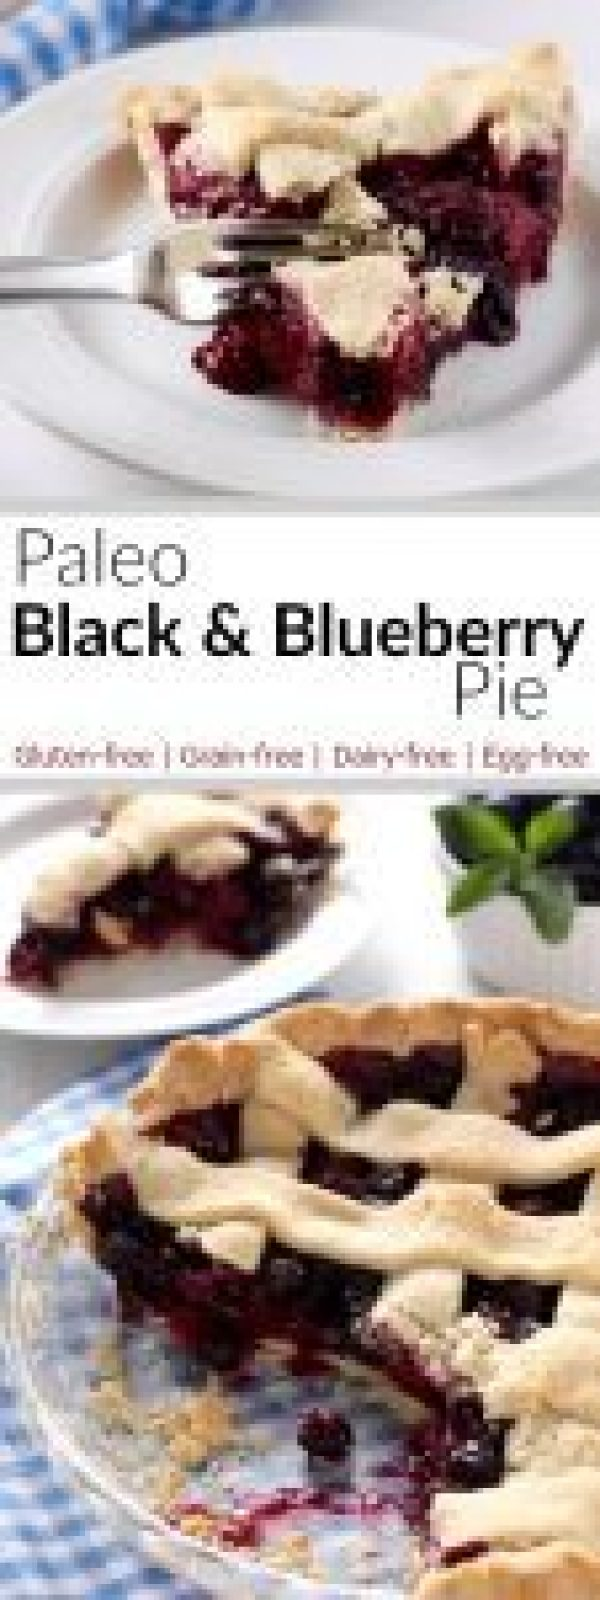 Paleo Black and Blueberry Pie | The Real Food Dietitians | https://therealfoodrds.com/paleo-black-and-blueberry-pie/